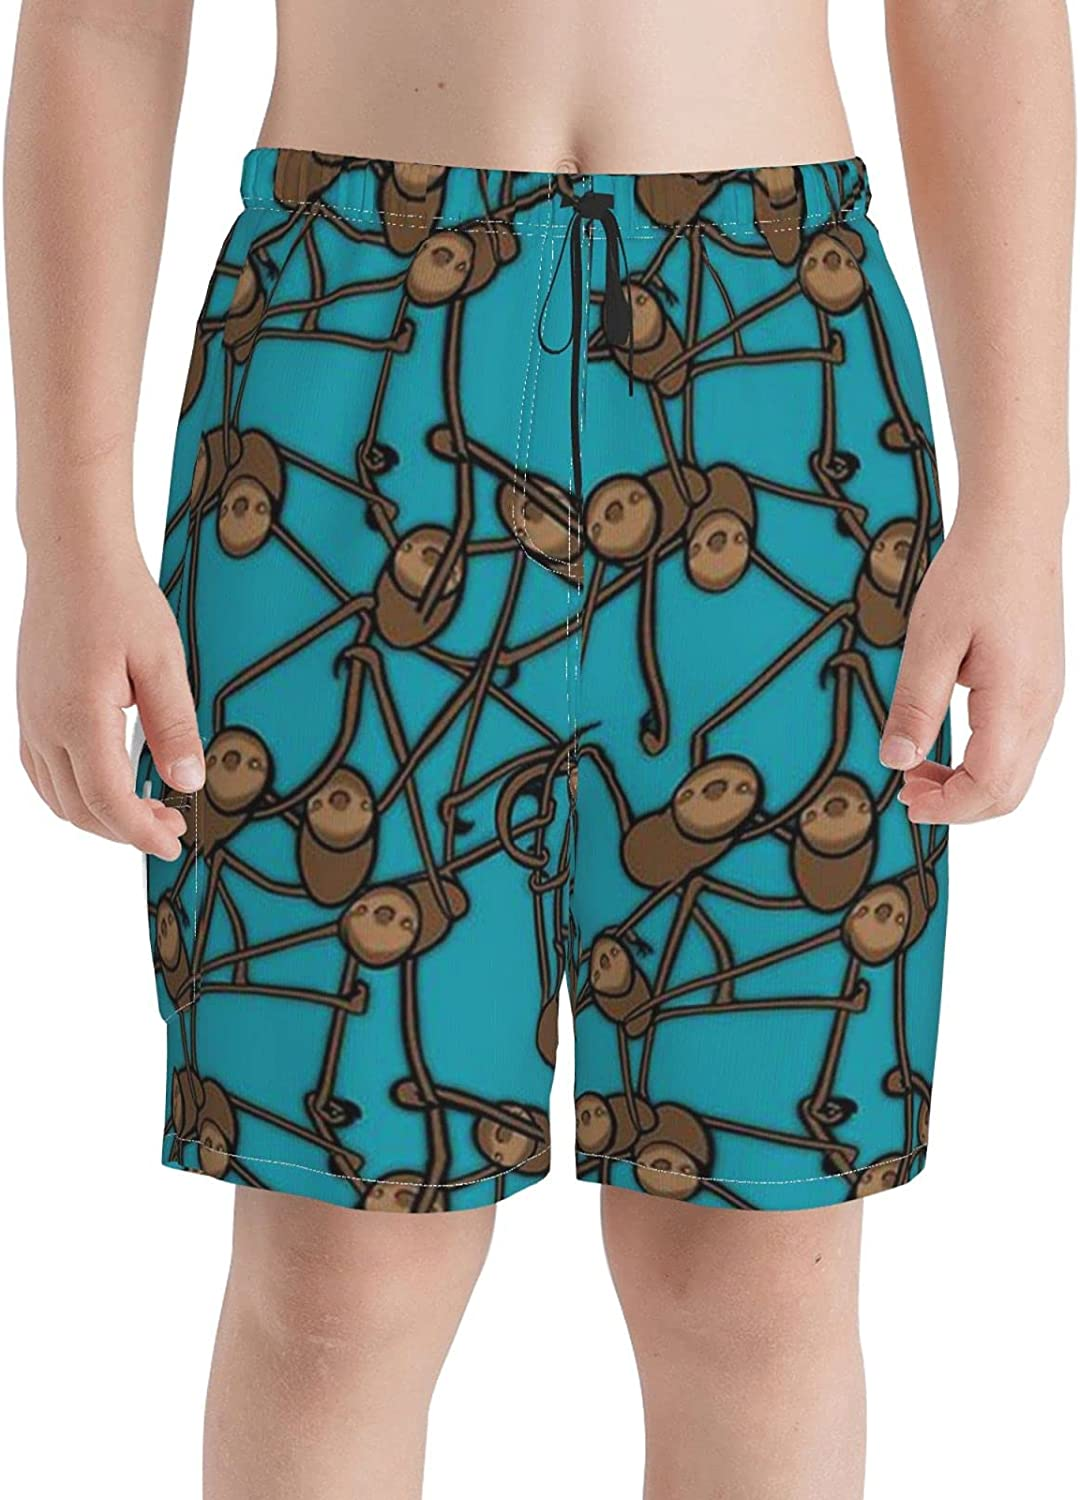 Neddelo Playful Sloths Boys 67% OFF of fixed price Clearance SALE Limited time Swim Beach Teens Boardshorts Trunks